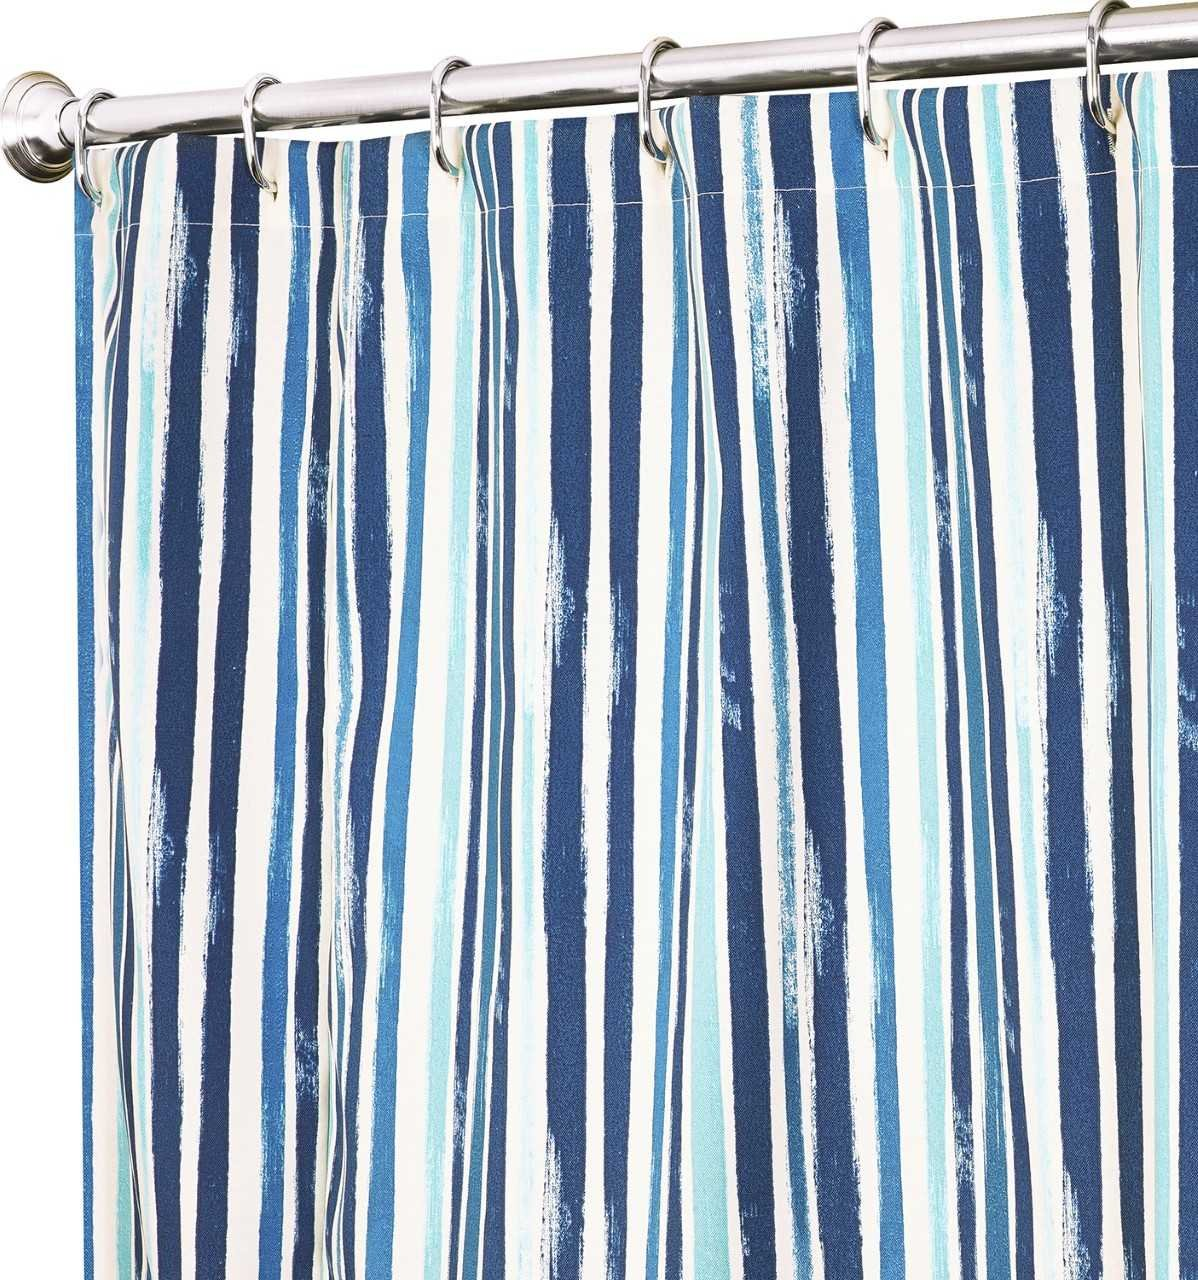 Amazon Shower Curtains For Bathroom Fabric Curtain Beach In Blue Striped Tommy Bahama House Decor Print 72 X Home